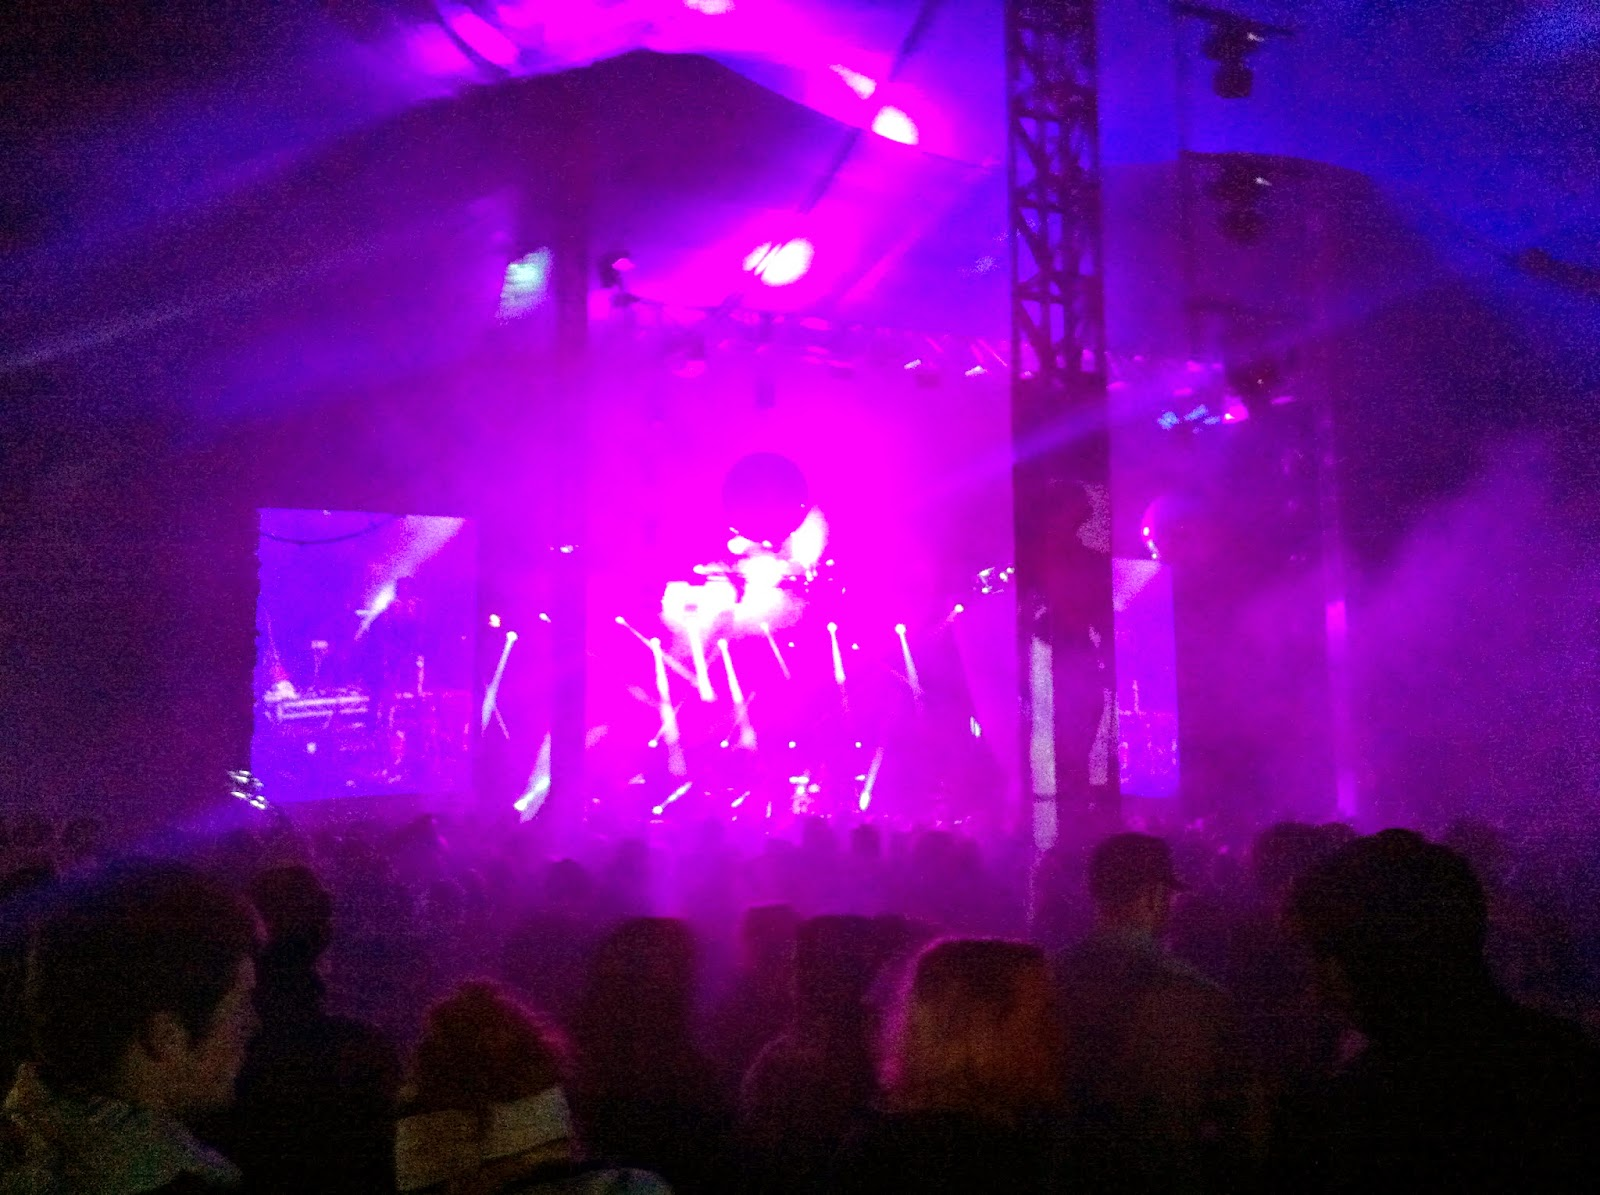 Danny Brown at Splendour in the Grass, Byron Bay / July 2014